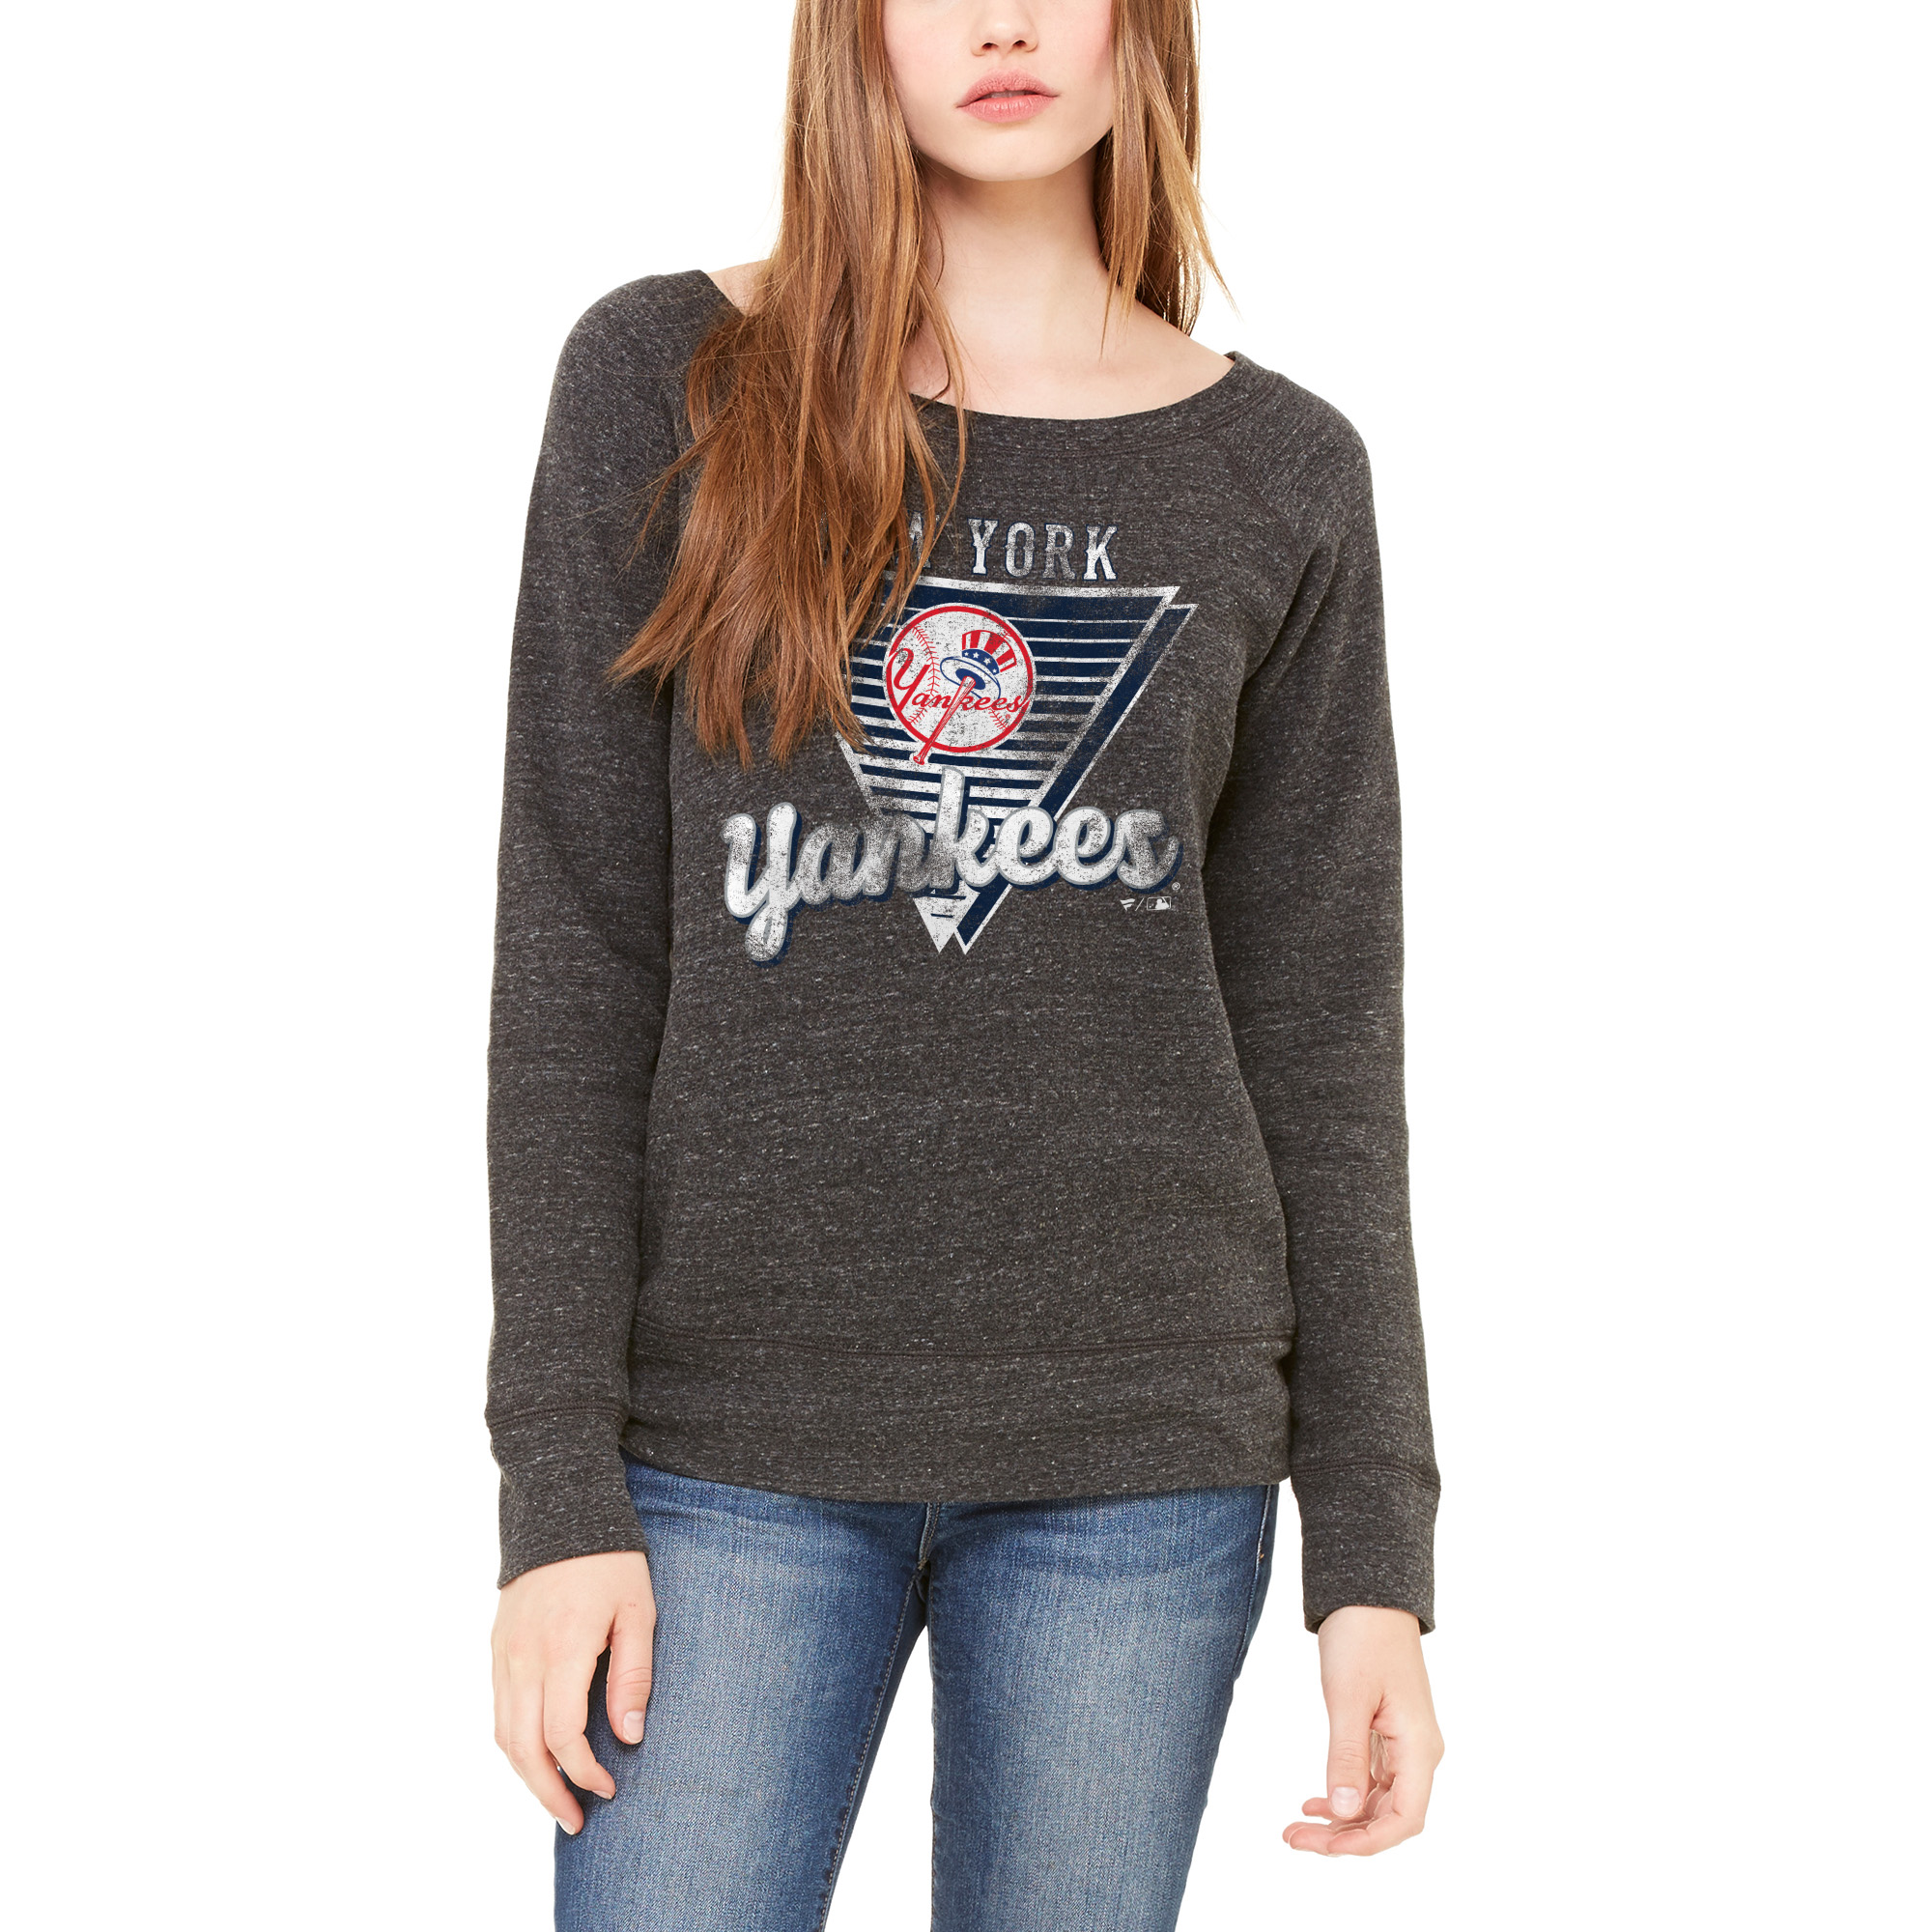 New York Yankees Let Loose by RNL Women's Eighty Something Wide Neck Sweatshirt - Charcoal